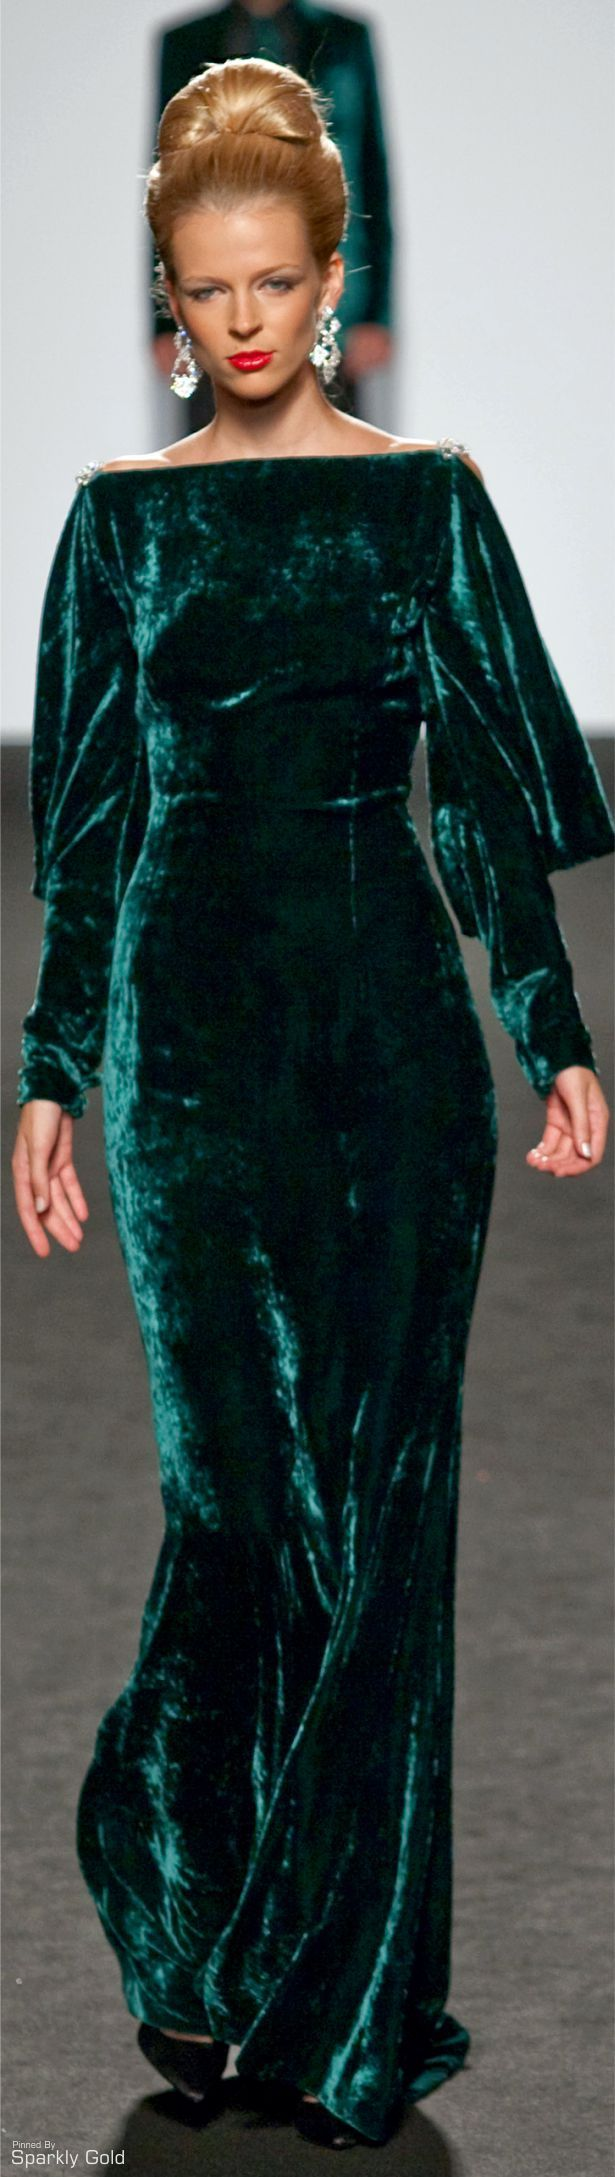 Beautiful emerald green, love the fabric and style... Renato Balestra F/W